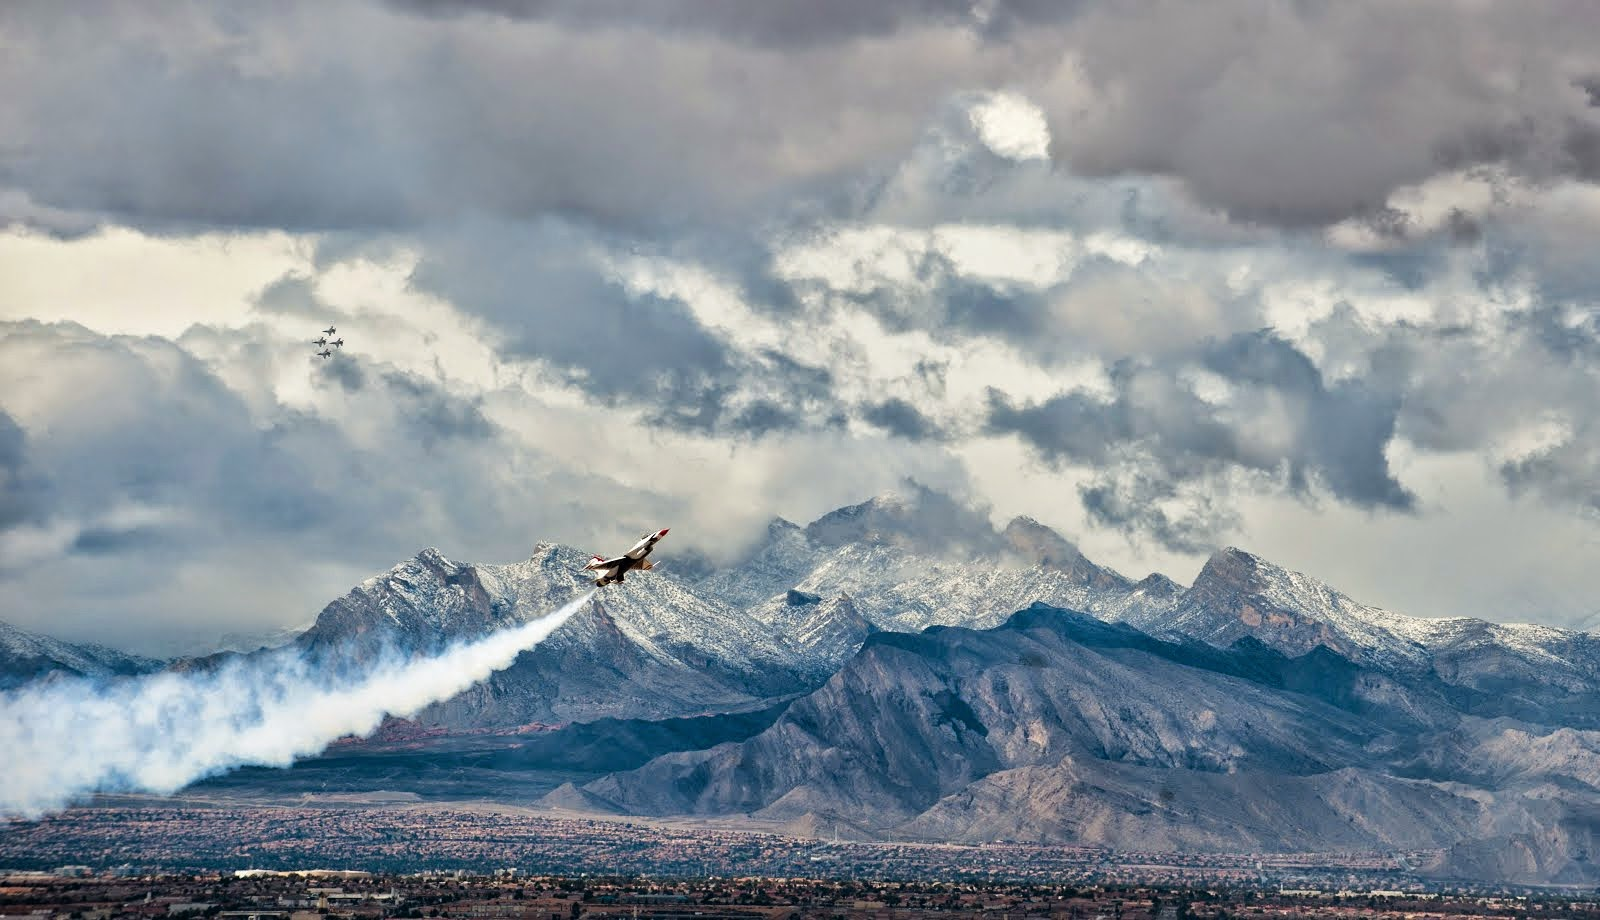 U.S. AIR FORCE THUNDERBIRDS PERFORM DEMONSTRATION AT NELLIS AFB